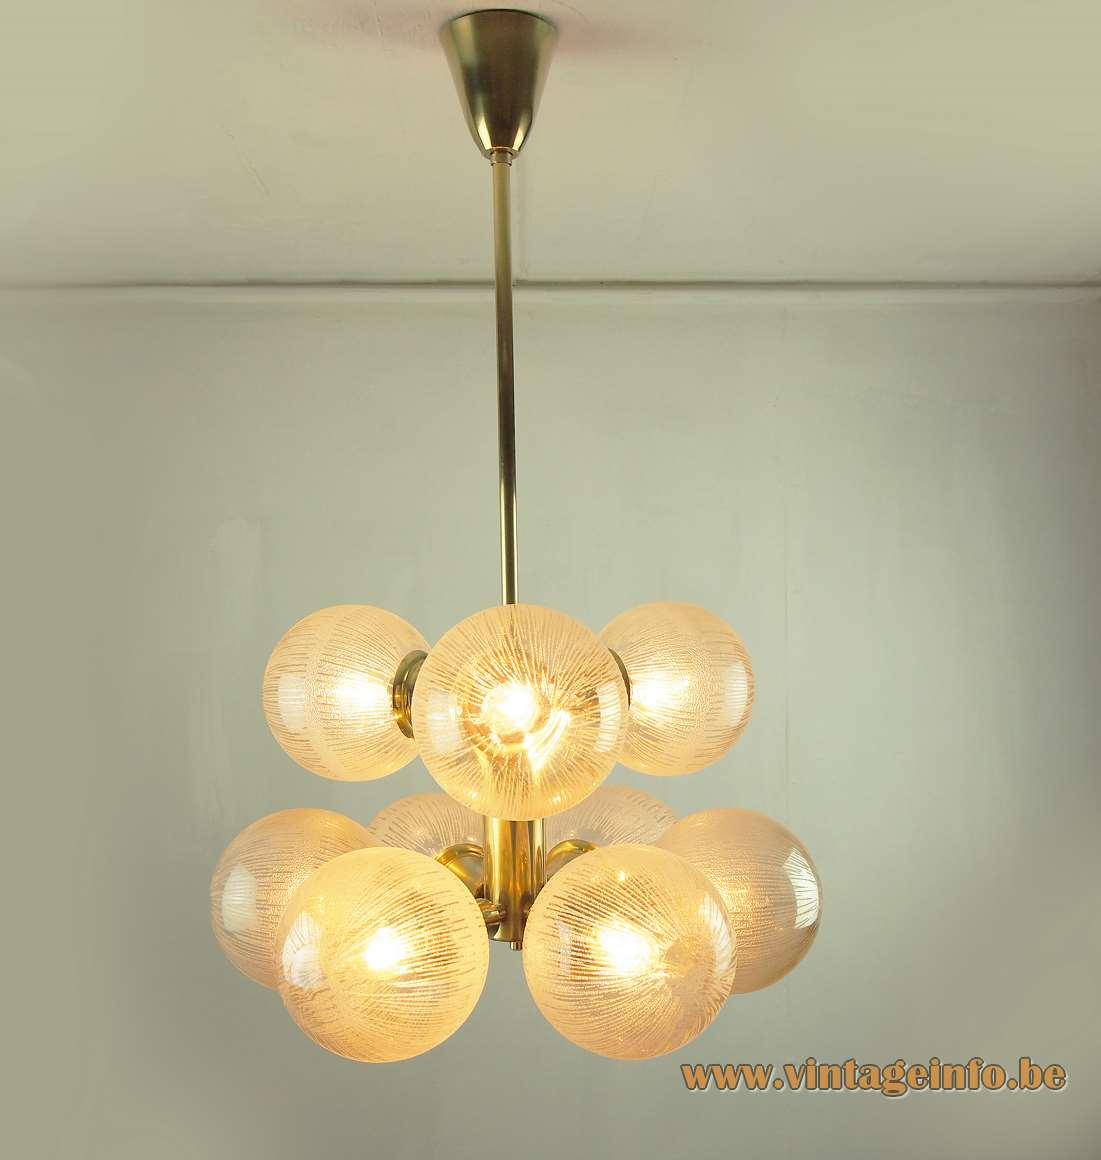 Leuchten Kaiser Kaiser Leuchten 9 Globes Chandelier –vintageinfo – All About Vintage Lighting